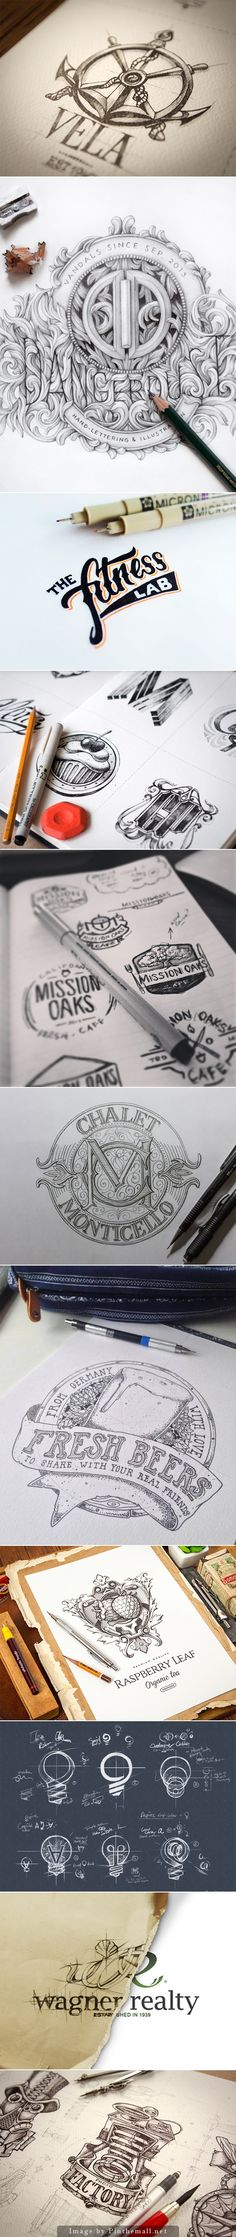 logo sketches #process